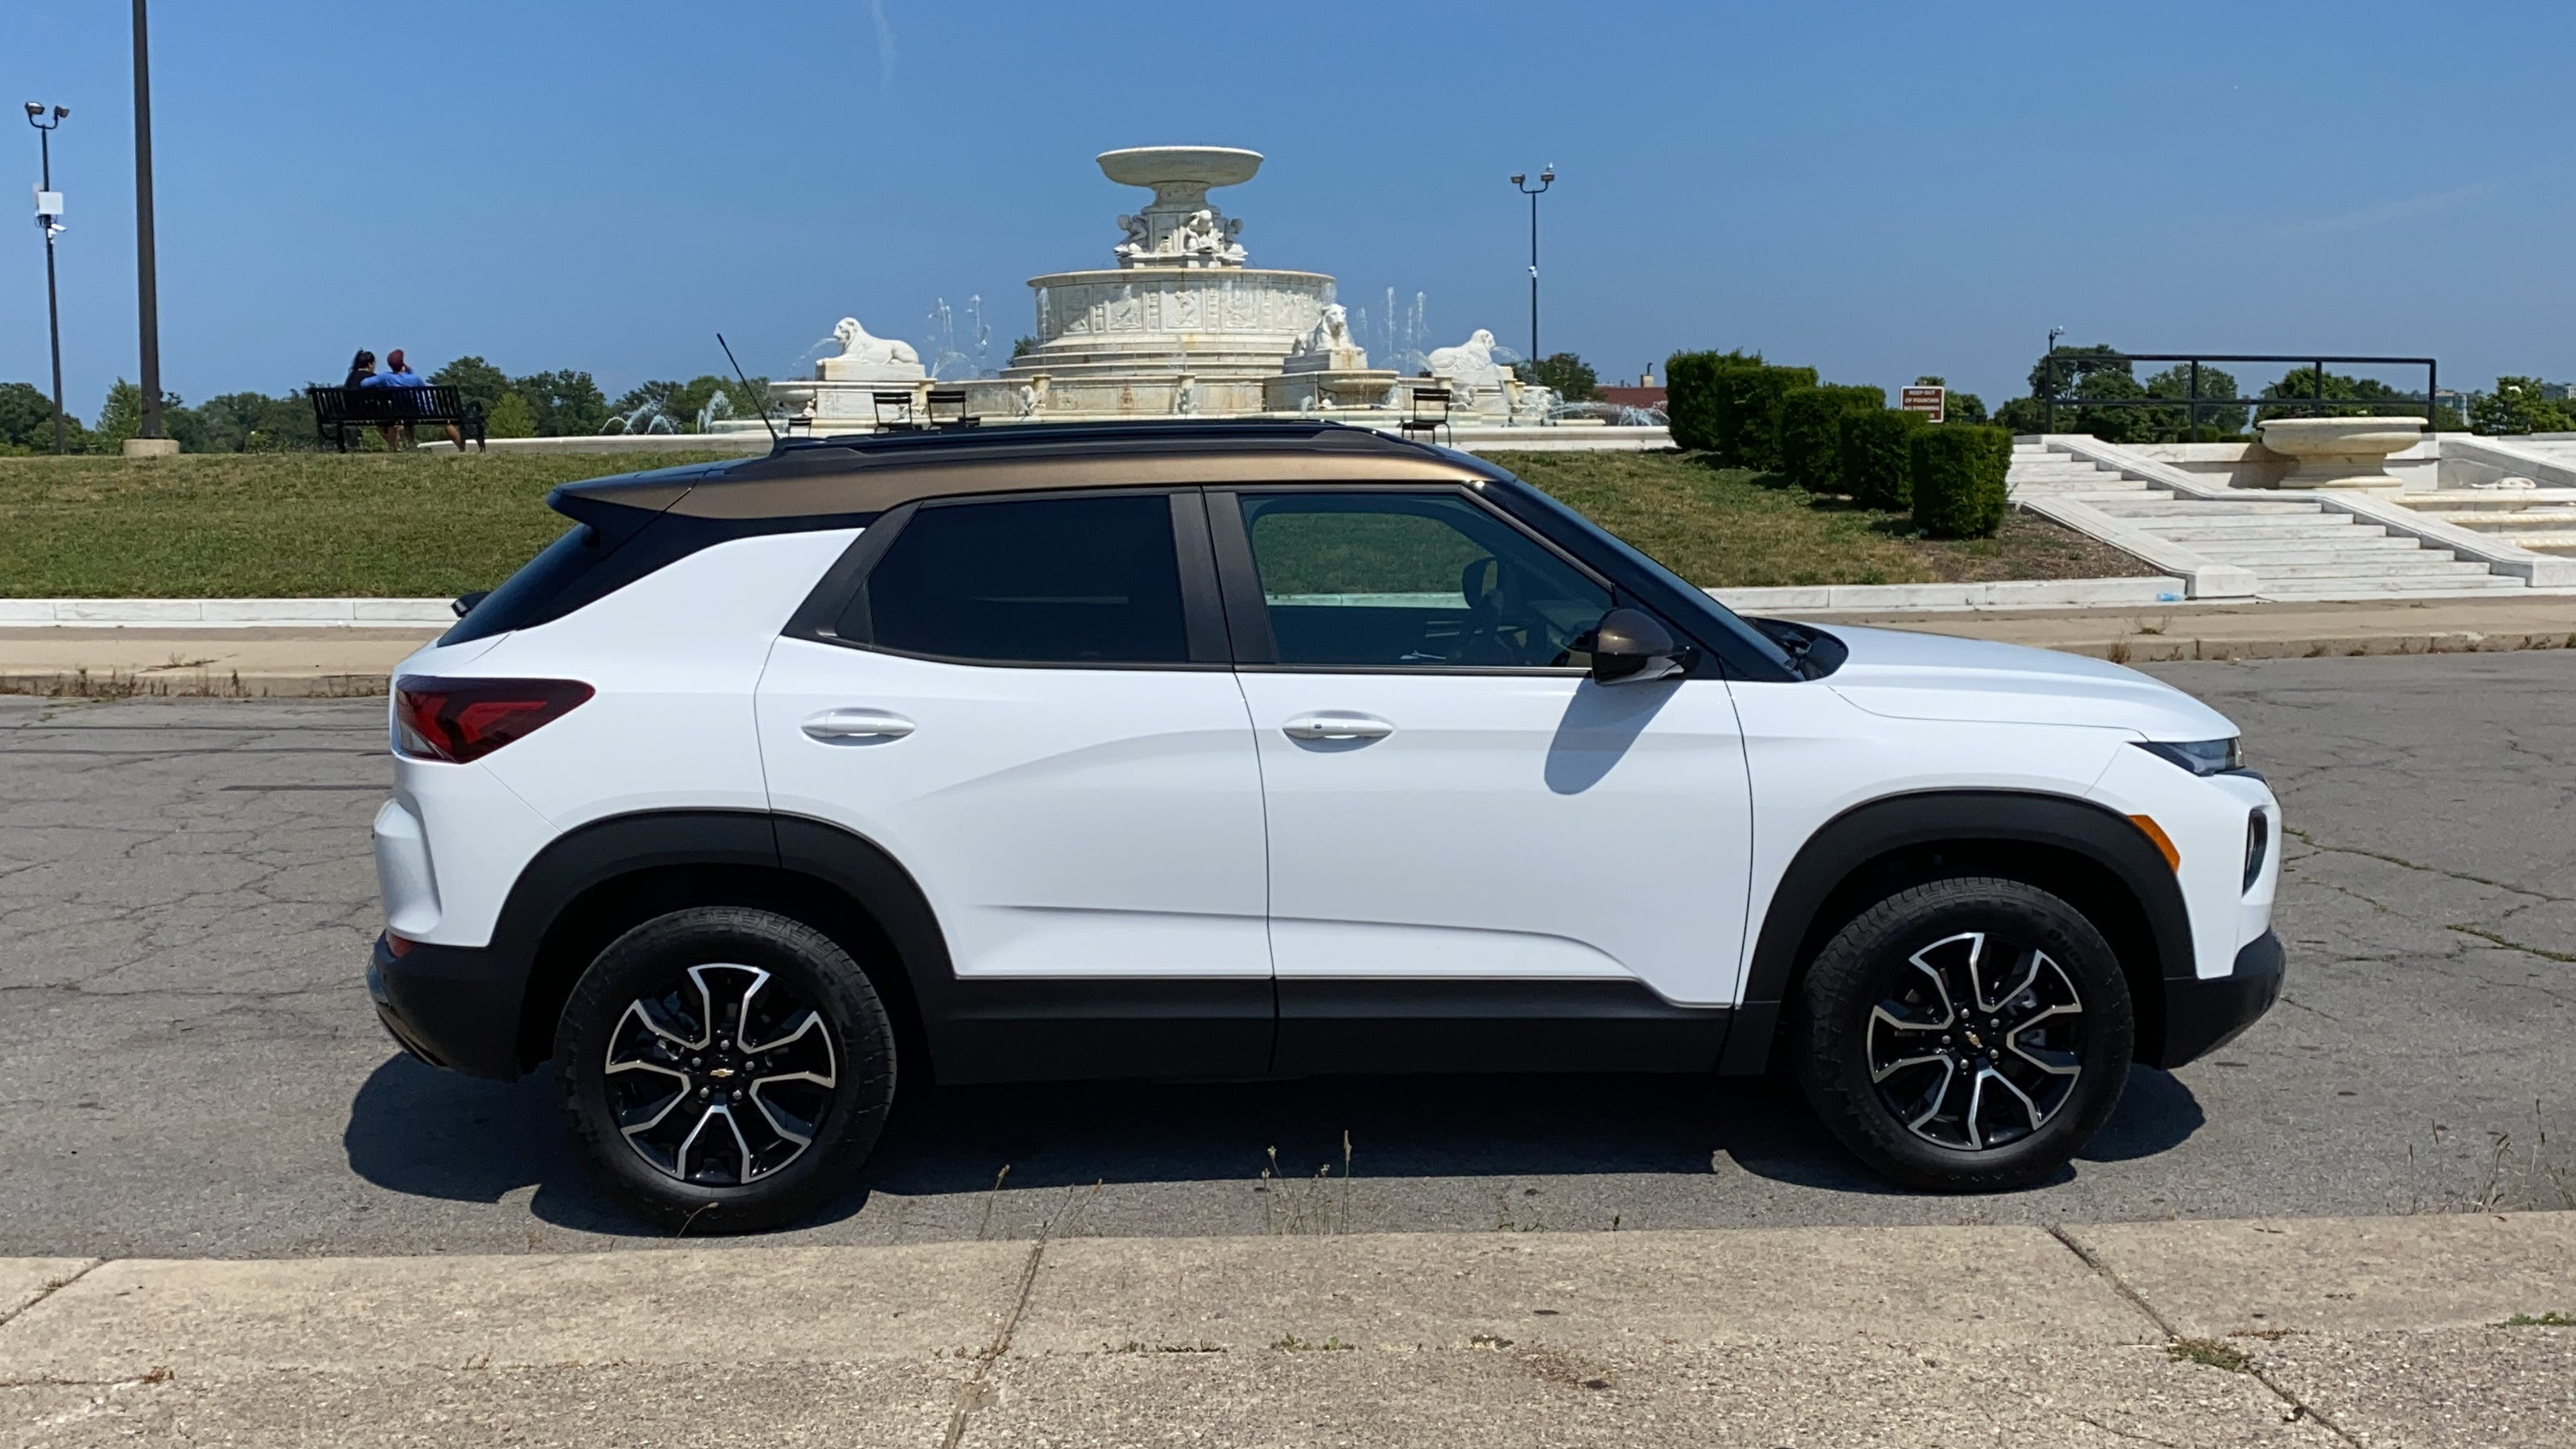 2021 Chevy Trailblazer S Style Value And Features Set The Standard For Small Suvs